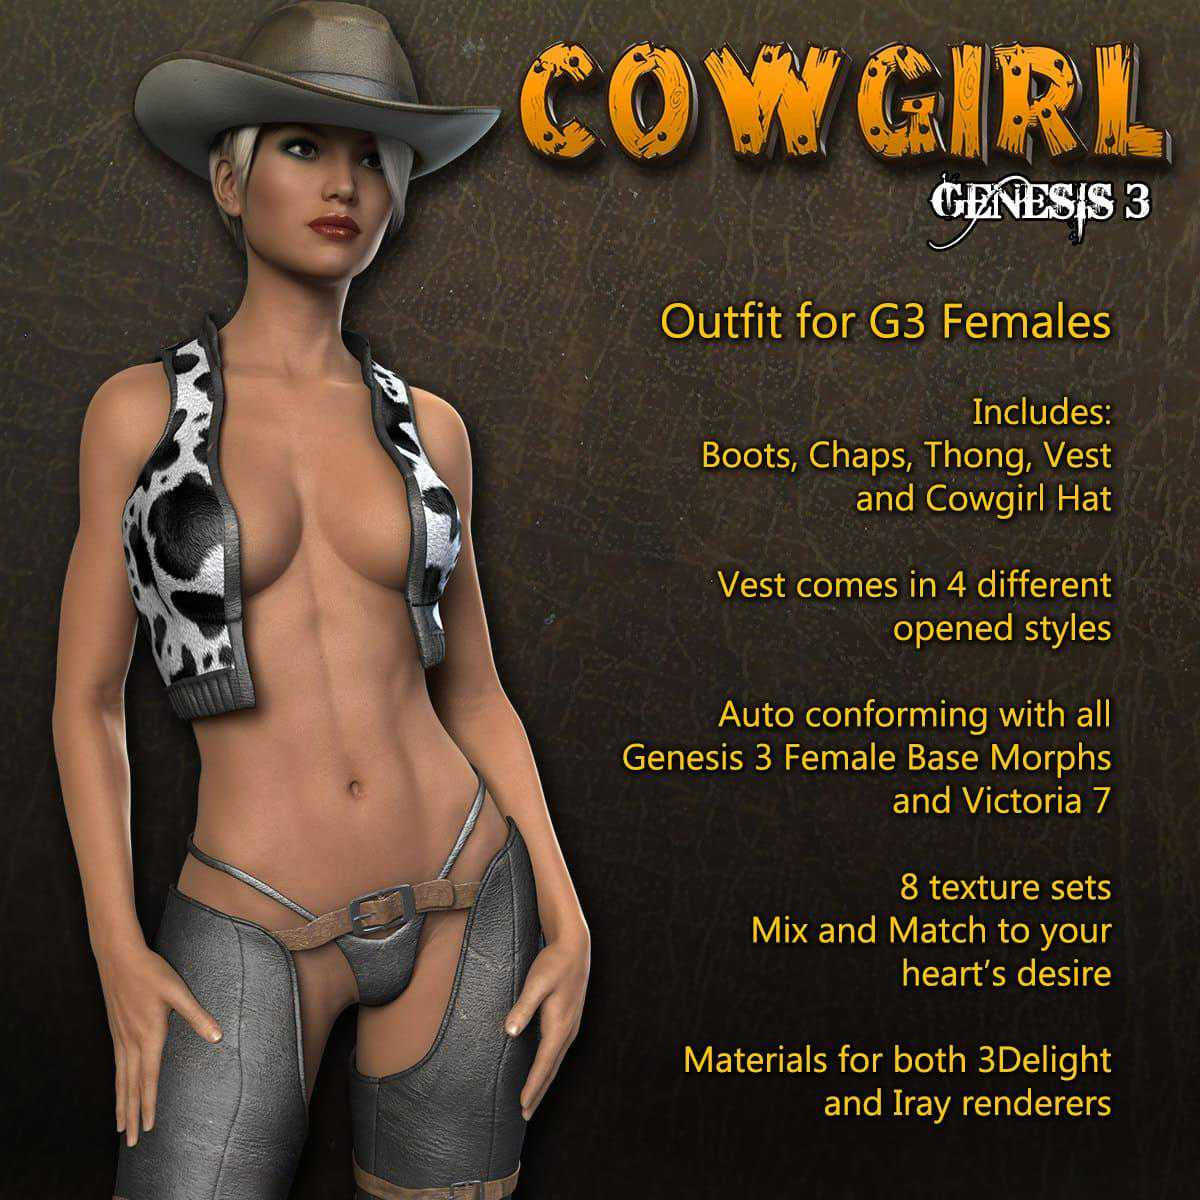 Exnem Cowgirl for G3 Female